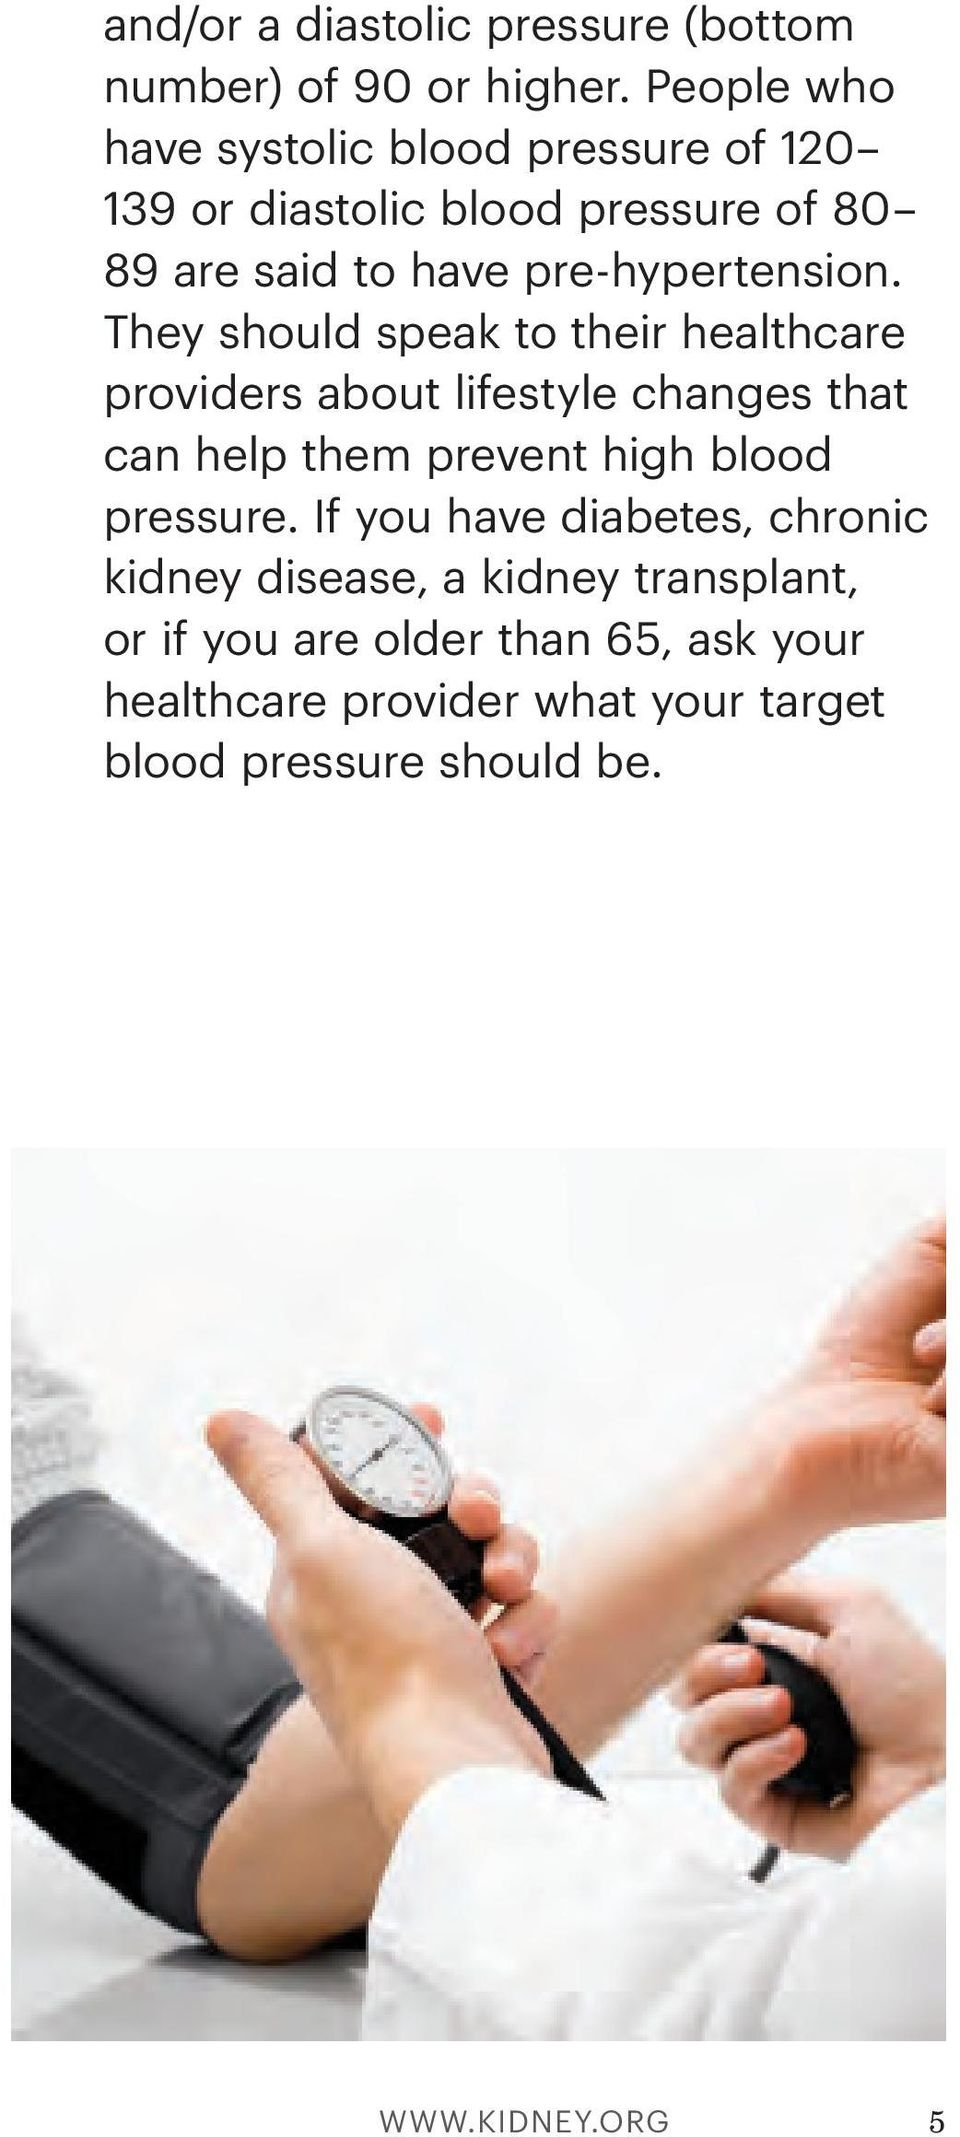 They should speak to their healthcare providers about lifestyle changes that can help them prevent high blood pressure.